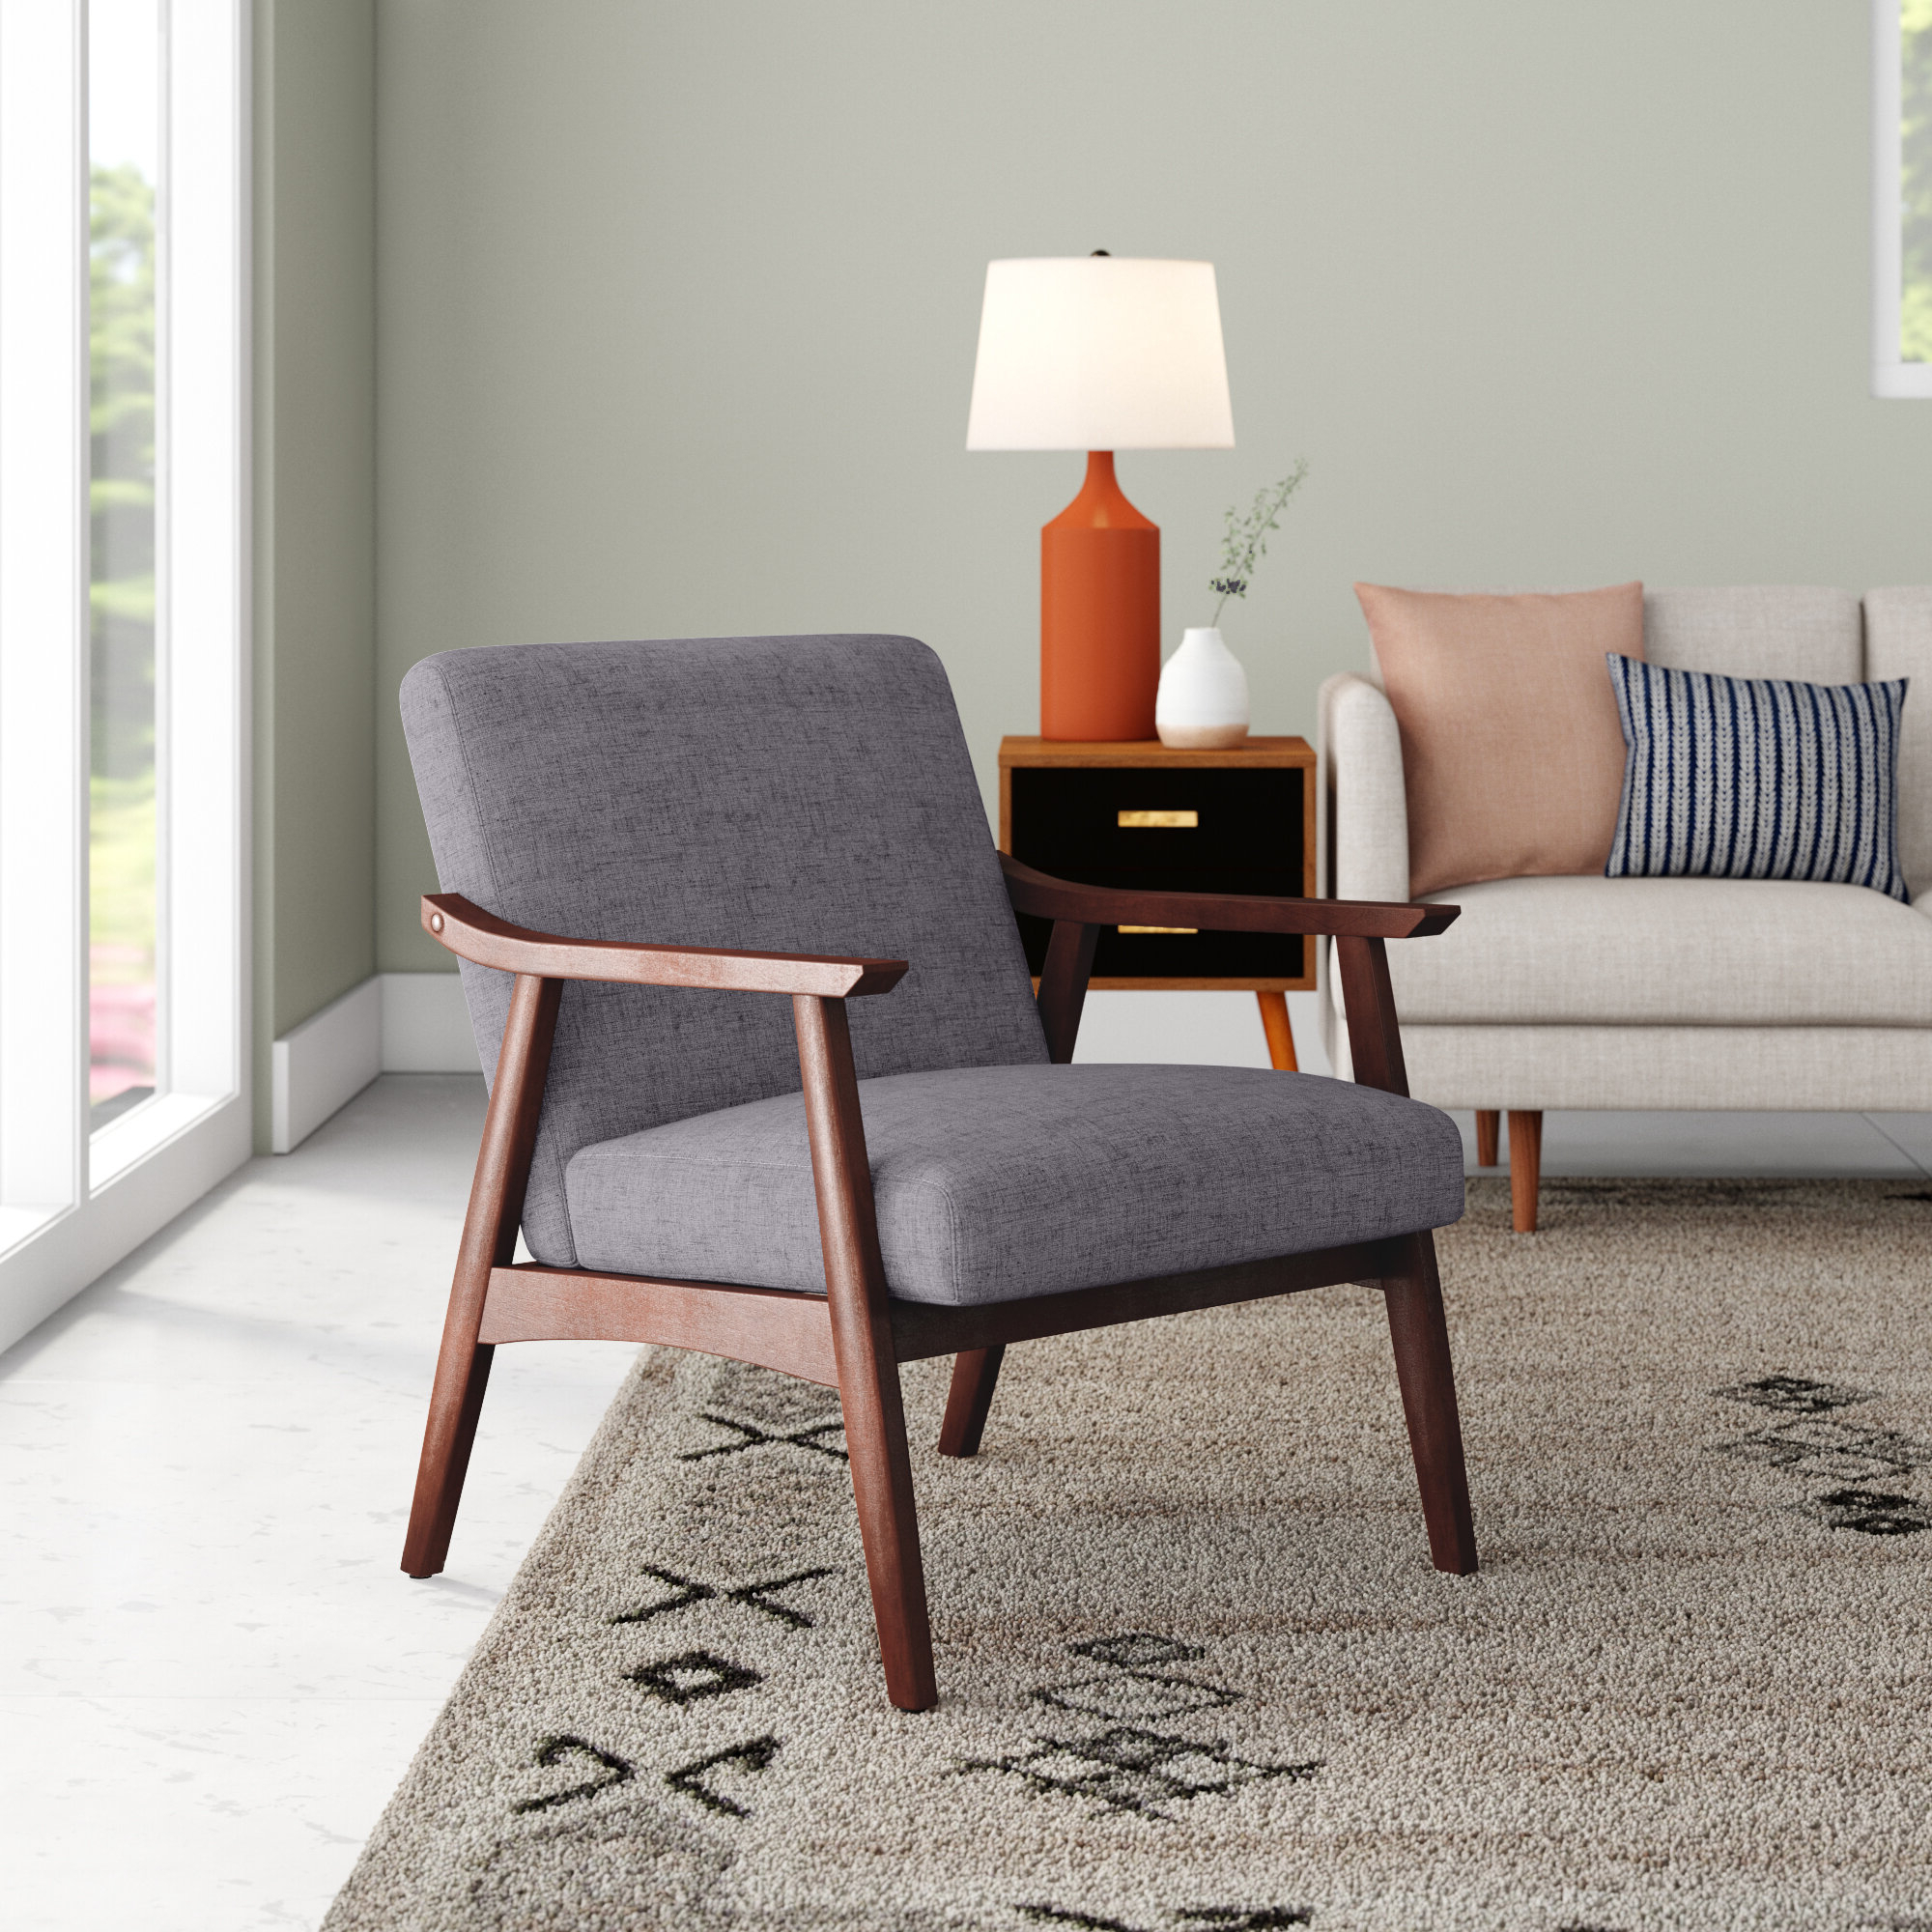 Wayfair Throughout Most Recent Ringwold Armchairs (View 12 of 20)